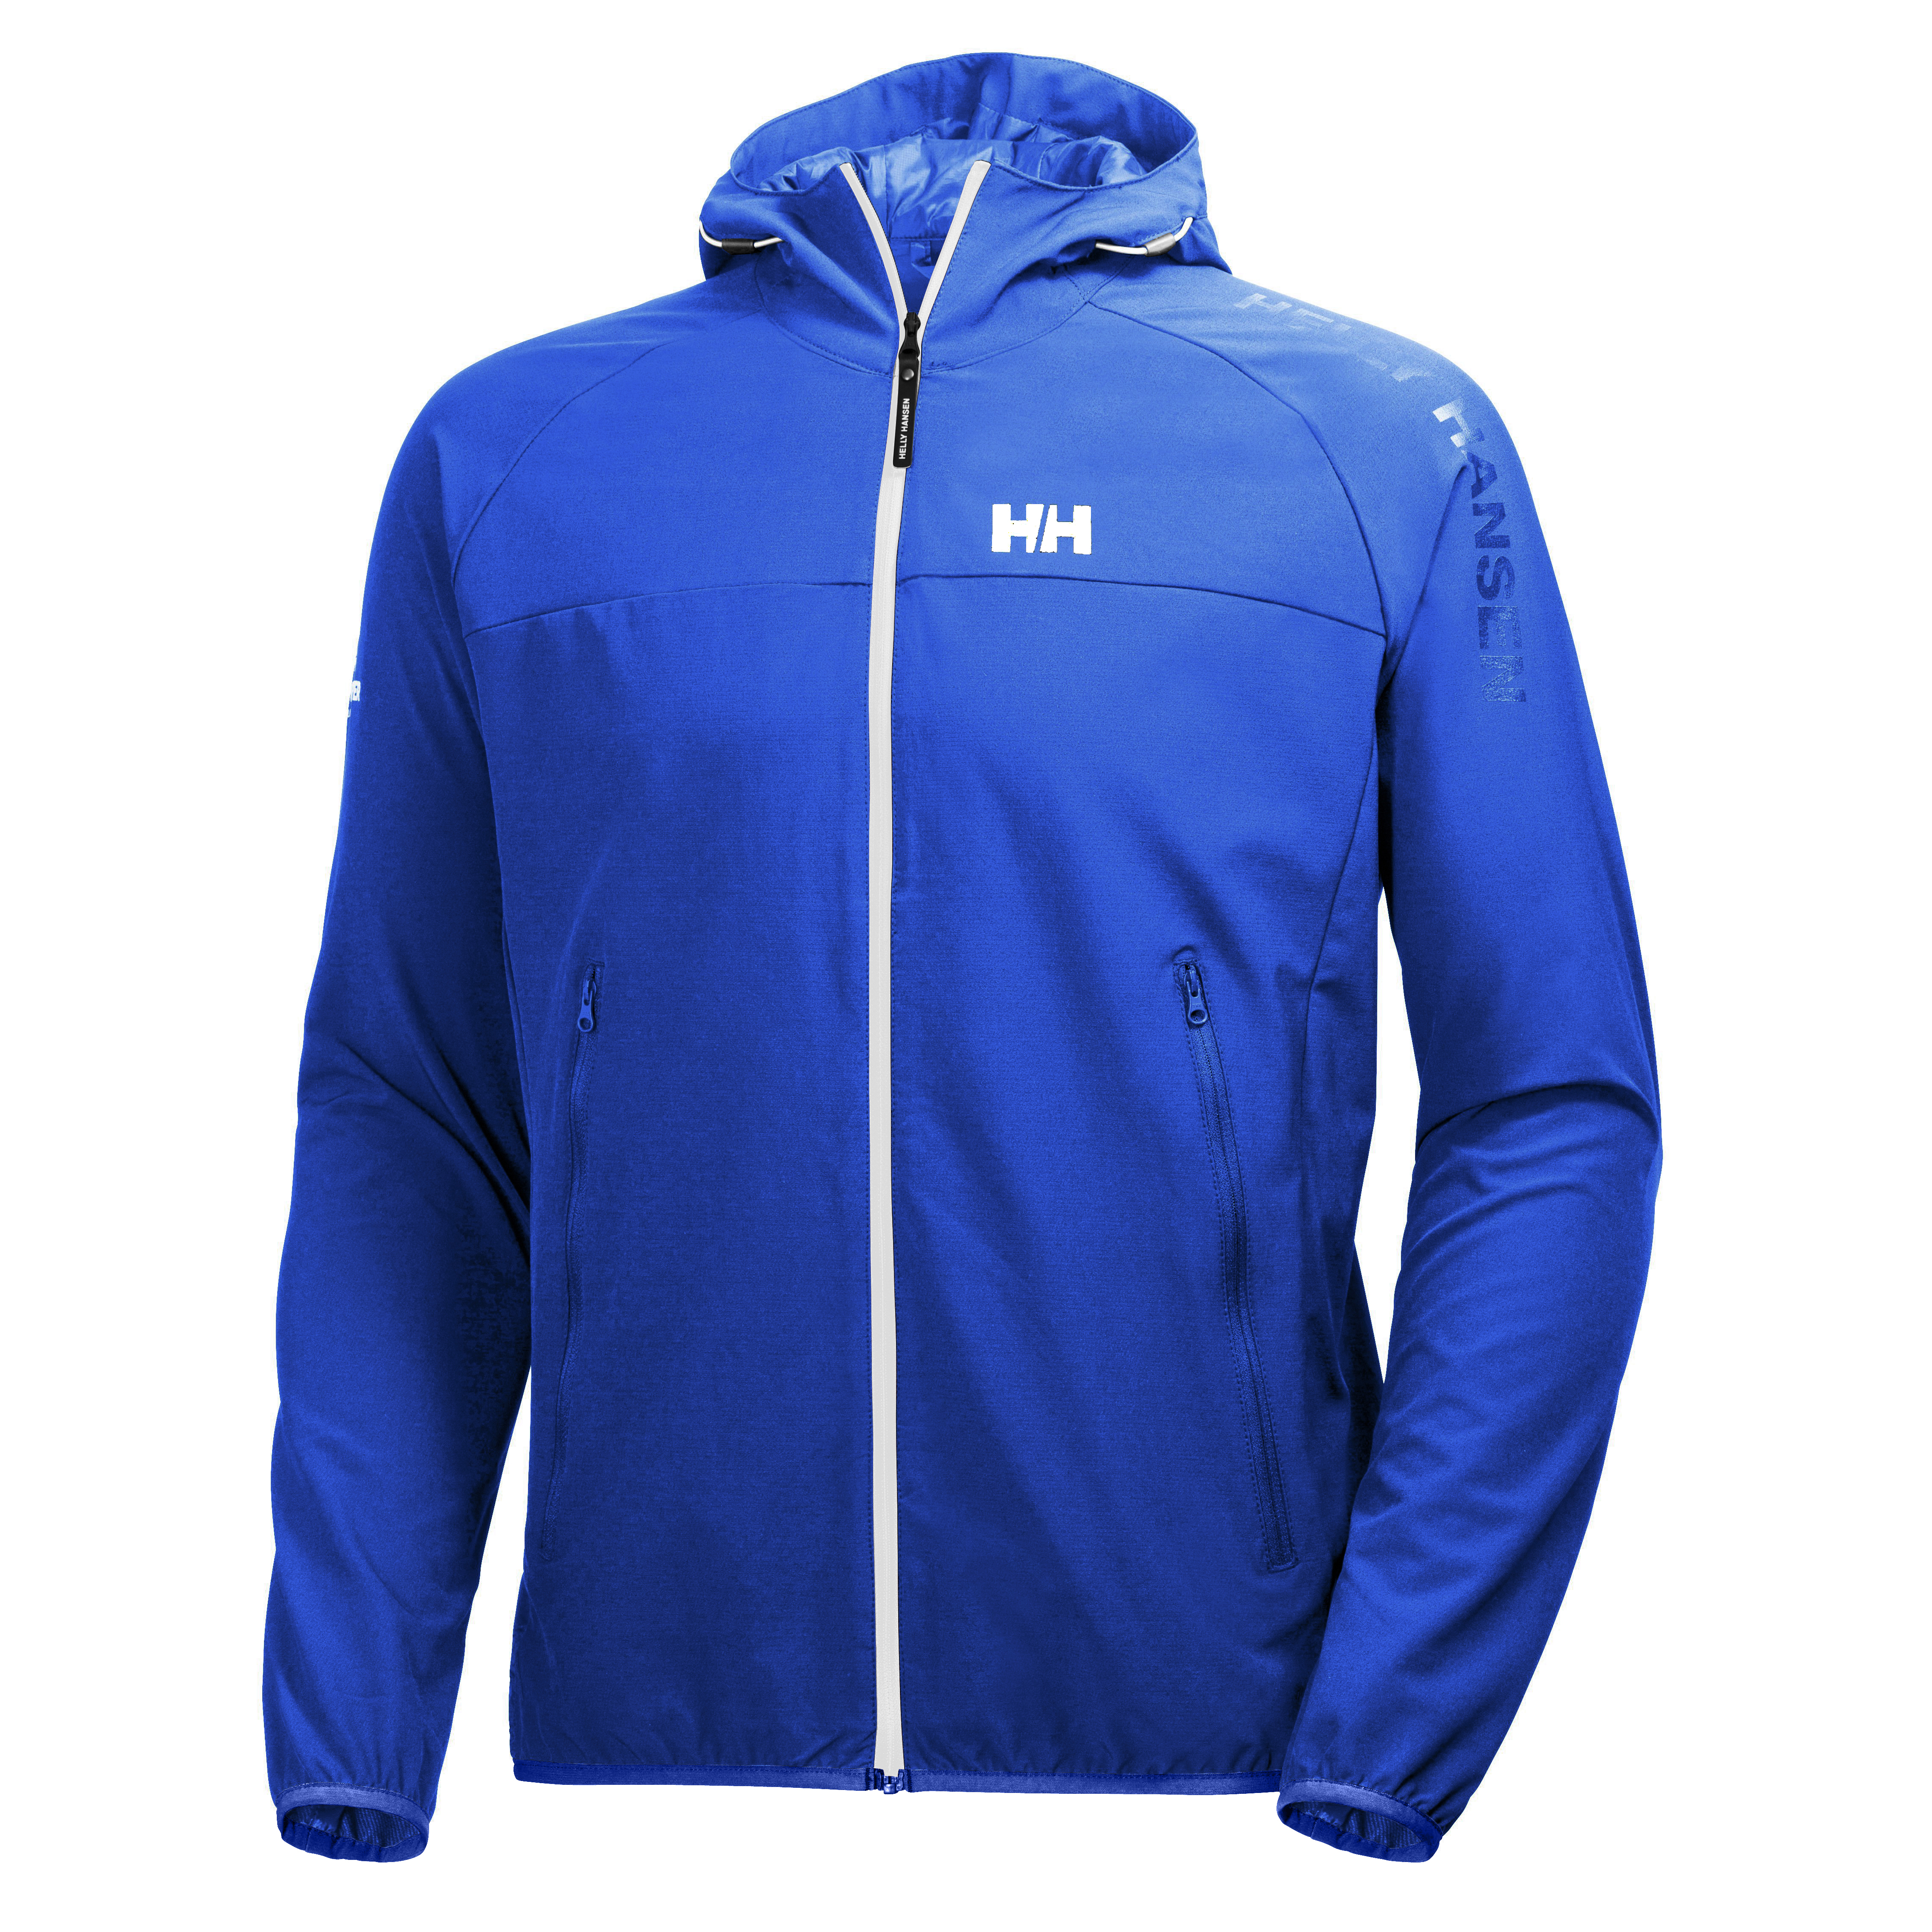 HELLY HANSEN HP SOFTSHELL JACKET (54394)